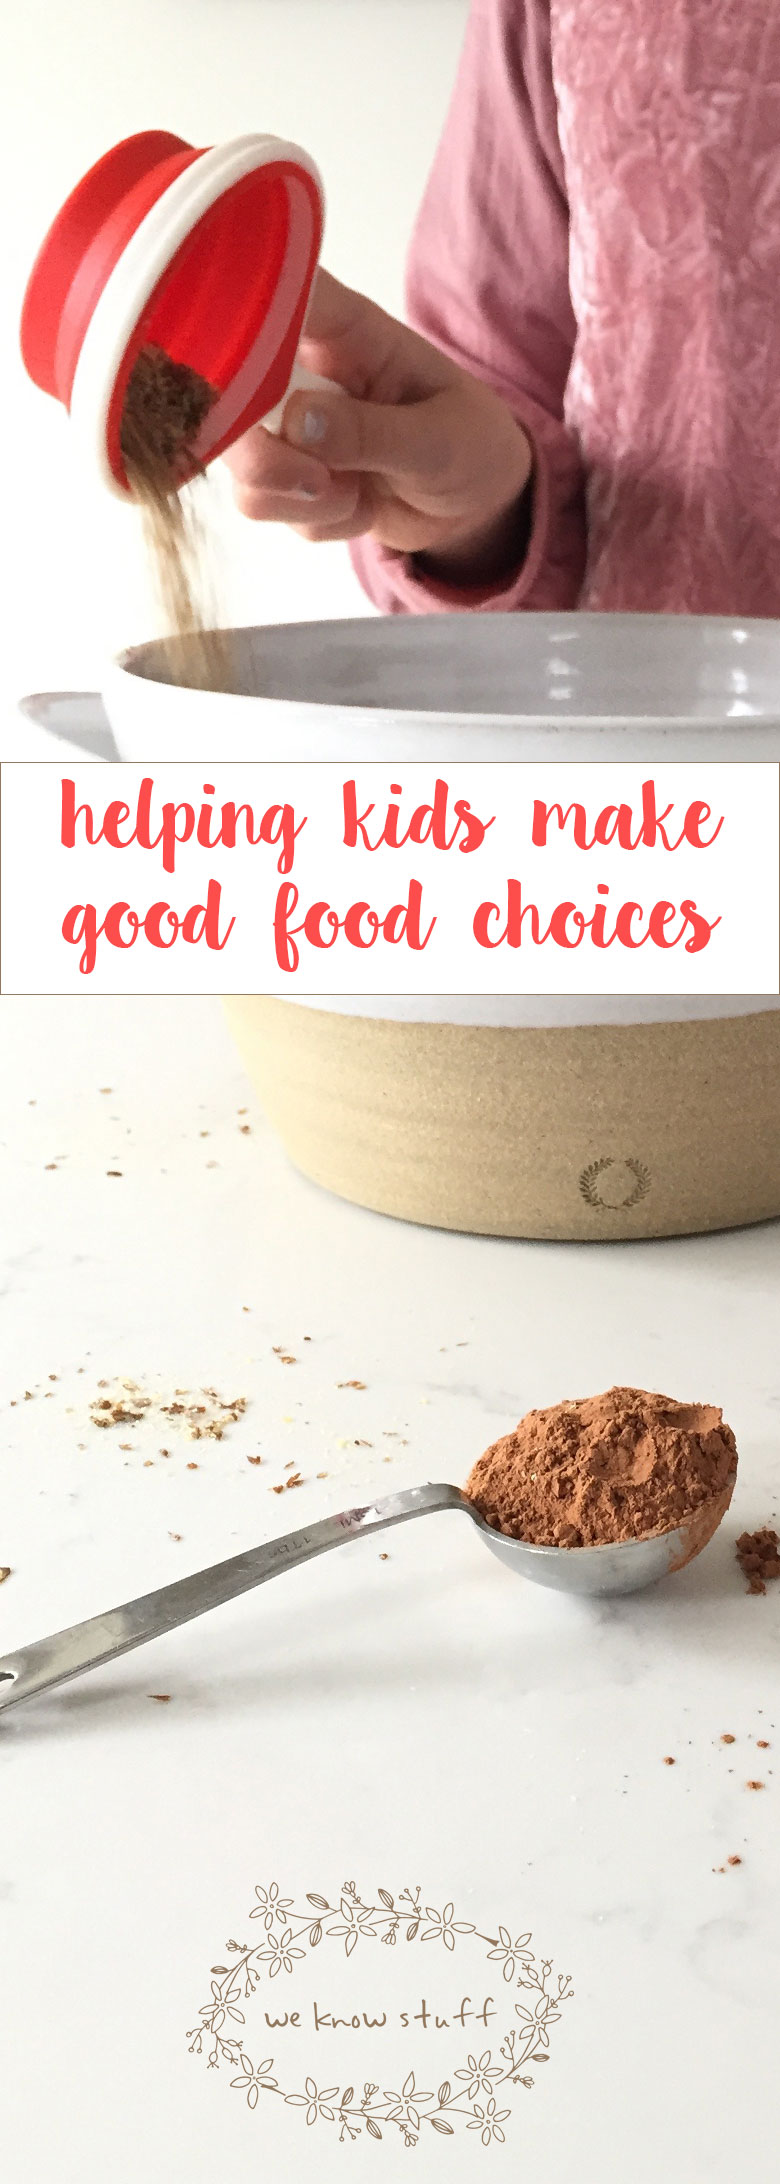 Learn how teaching kids make good choices can improve their diet this holiday season.